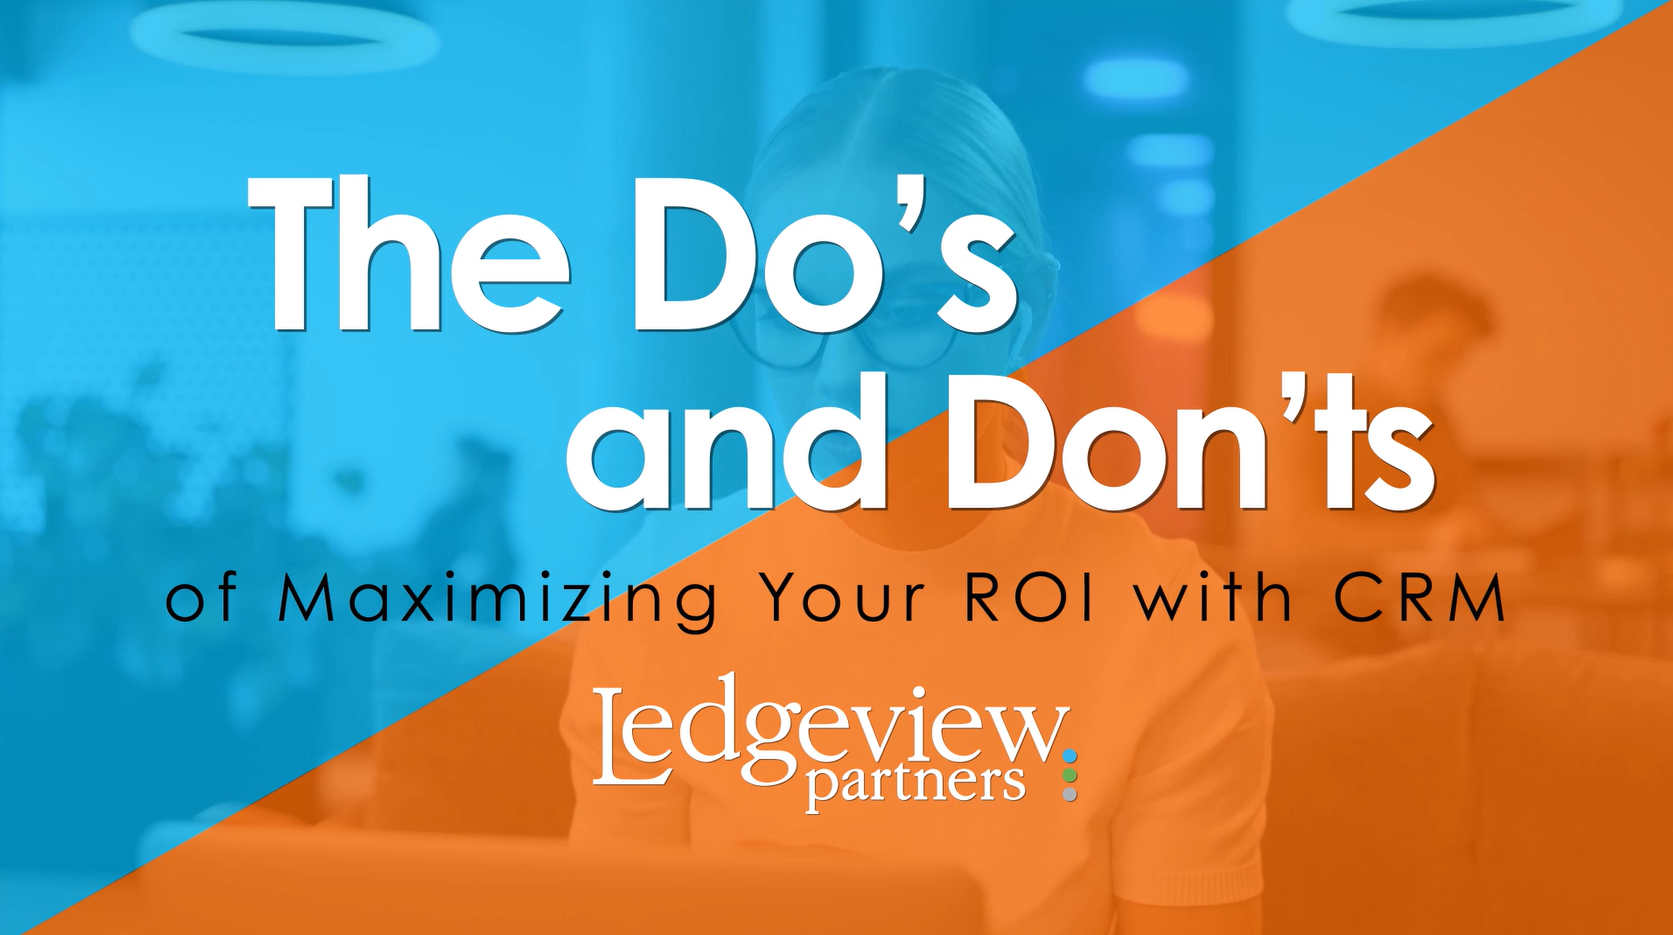 Maximize your ROI with CRM